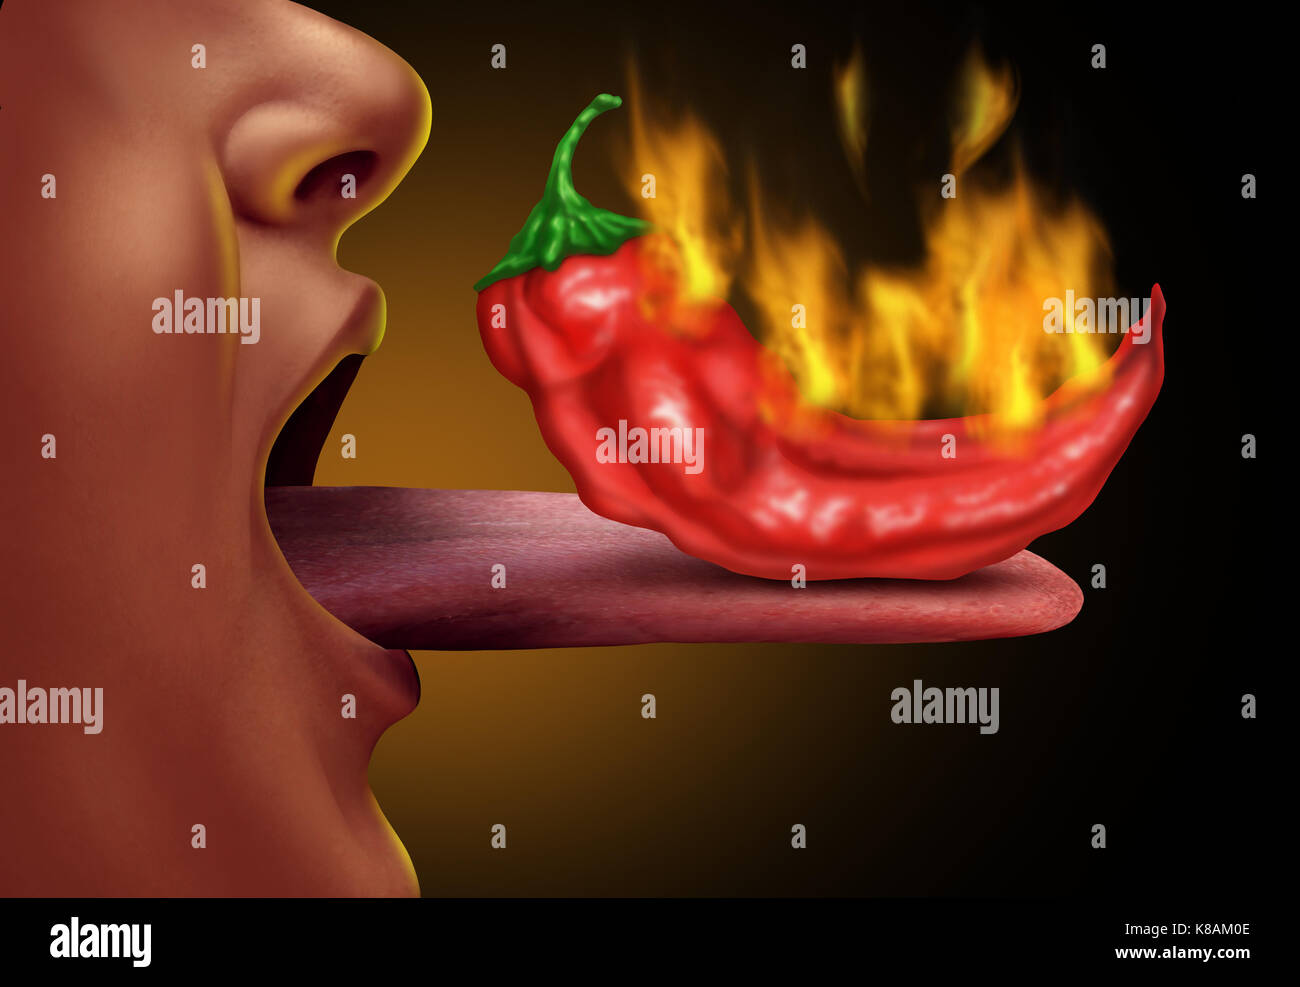 how to stop tongue hot food